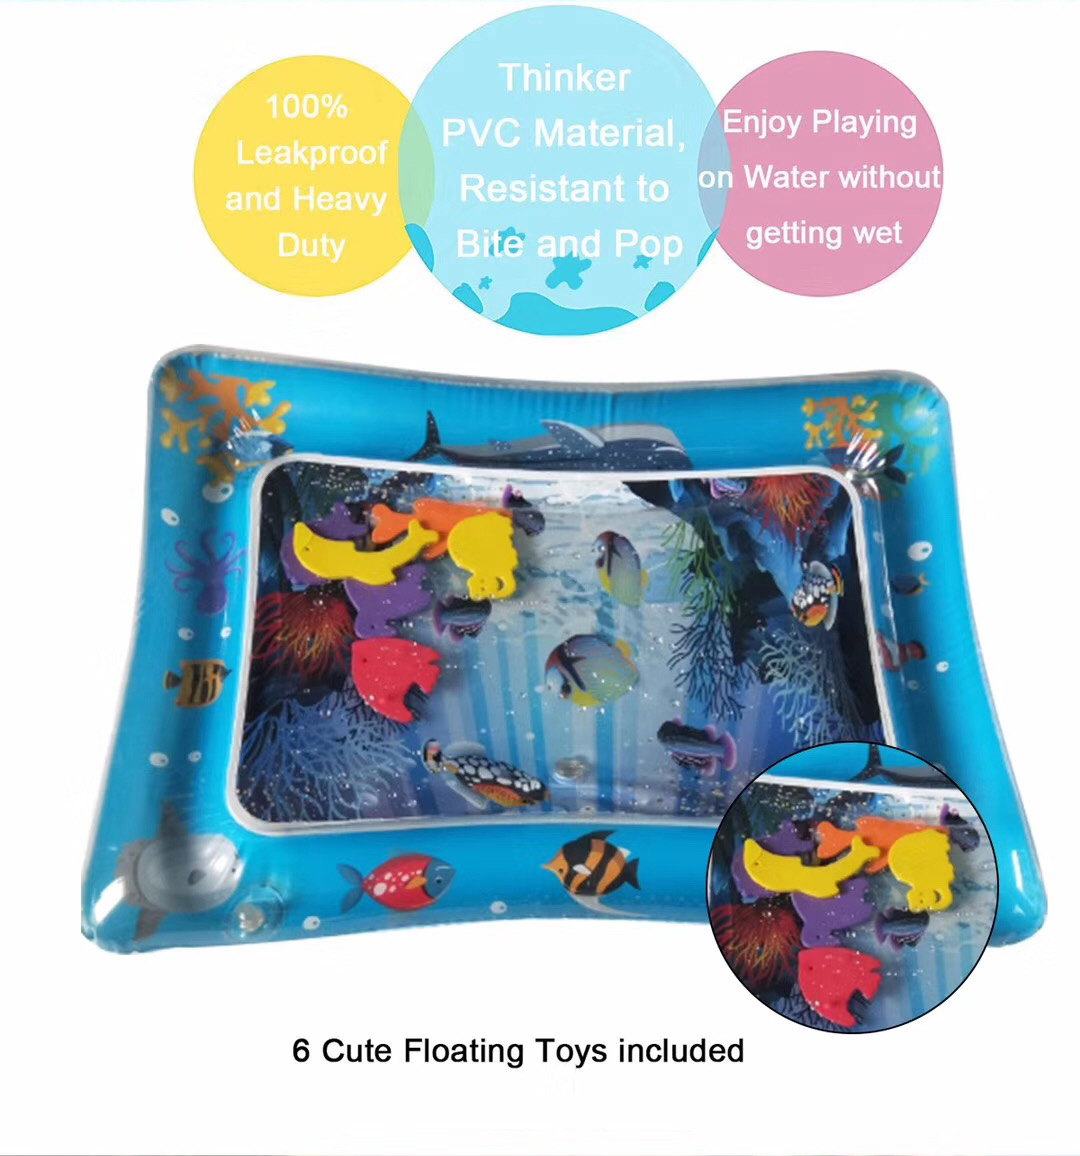 Hot Sales Baby Kids water play mat Inflatable Infant Tummy Time Playmat Toddler for Baby Fun Hot Sales Baby Kids water play mat Inflatable Infant Tummy Time Playmat Toddler for Baby Fun Activity Play Center DropshipTSLM1